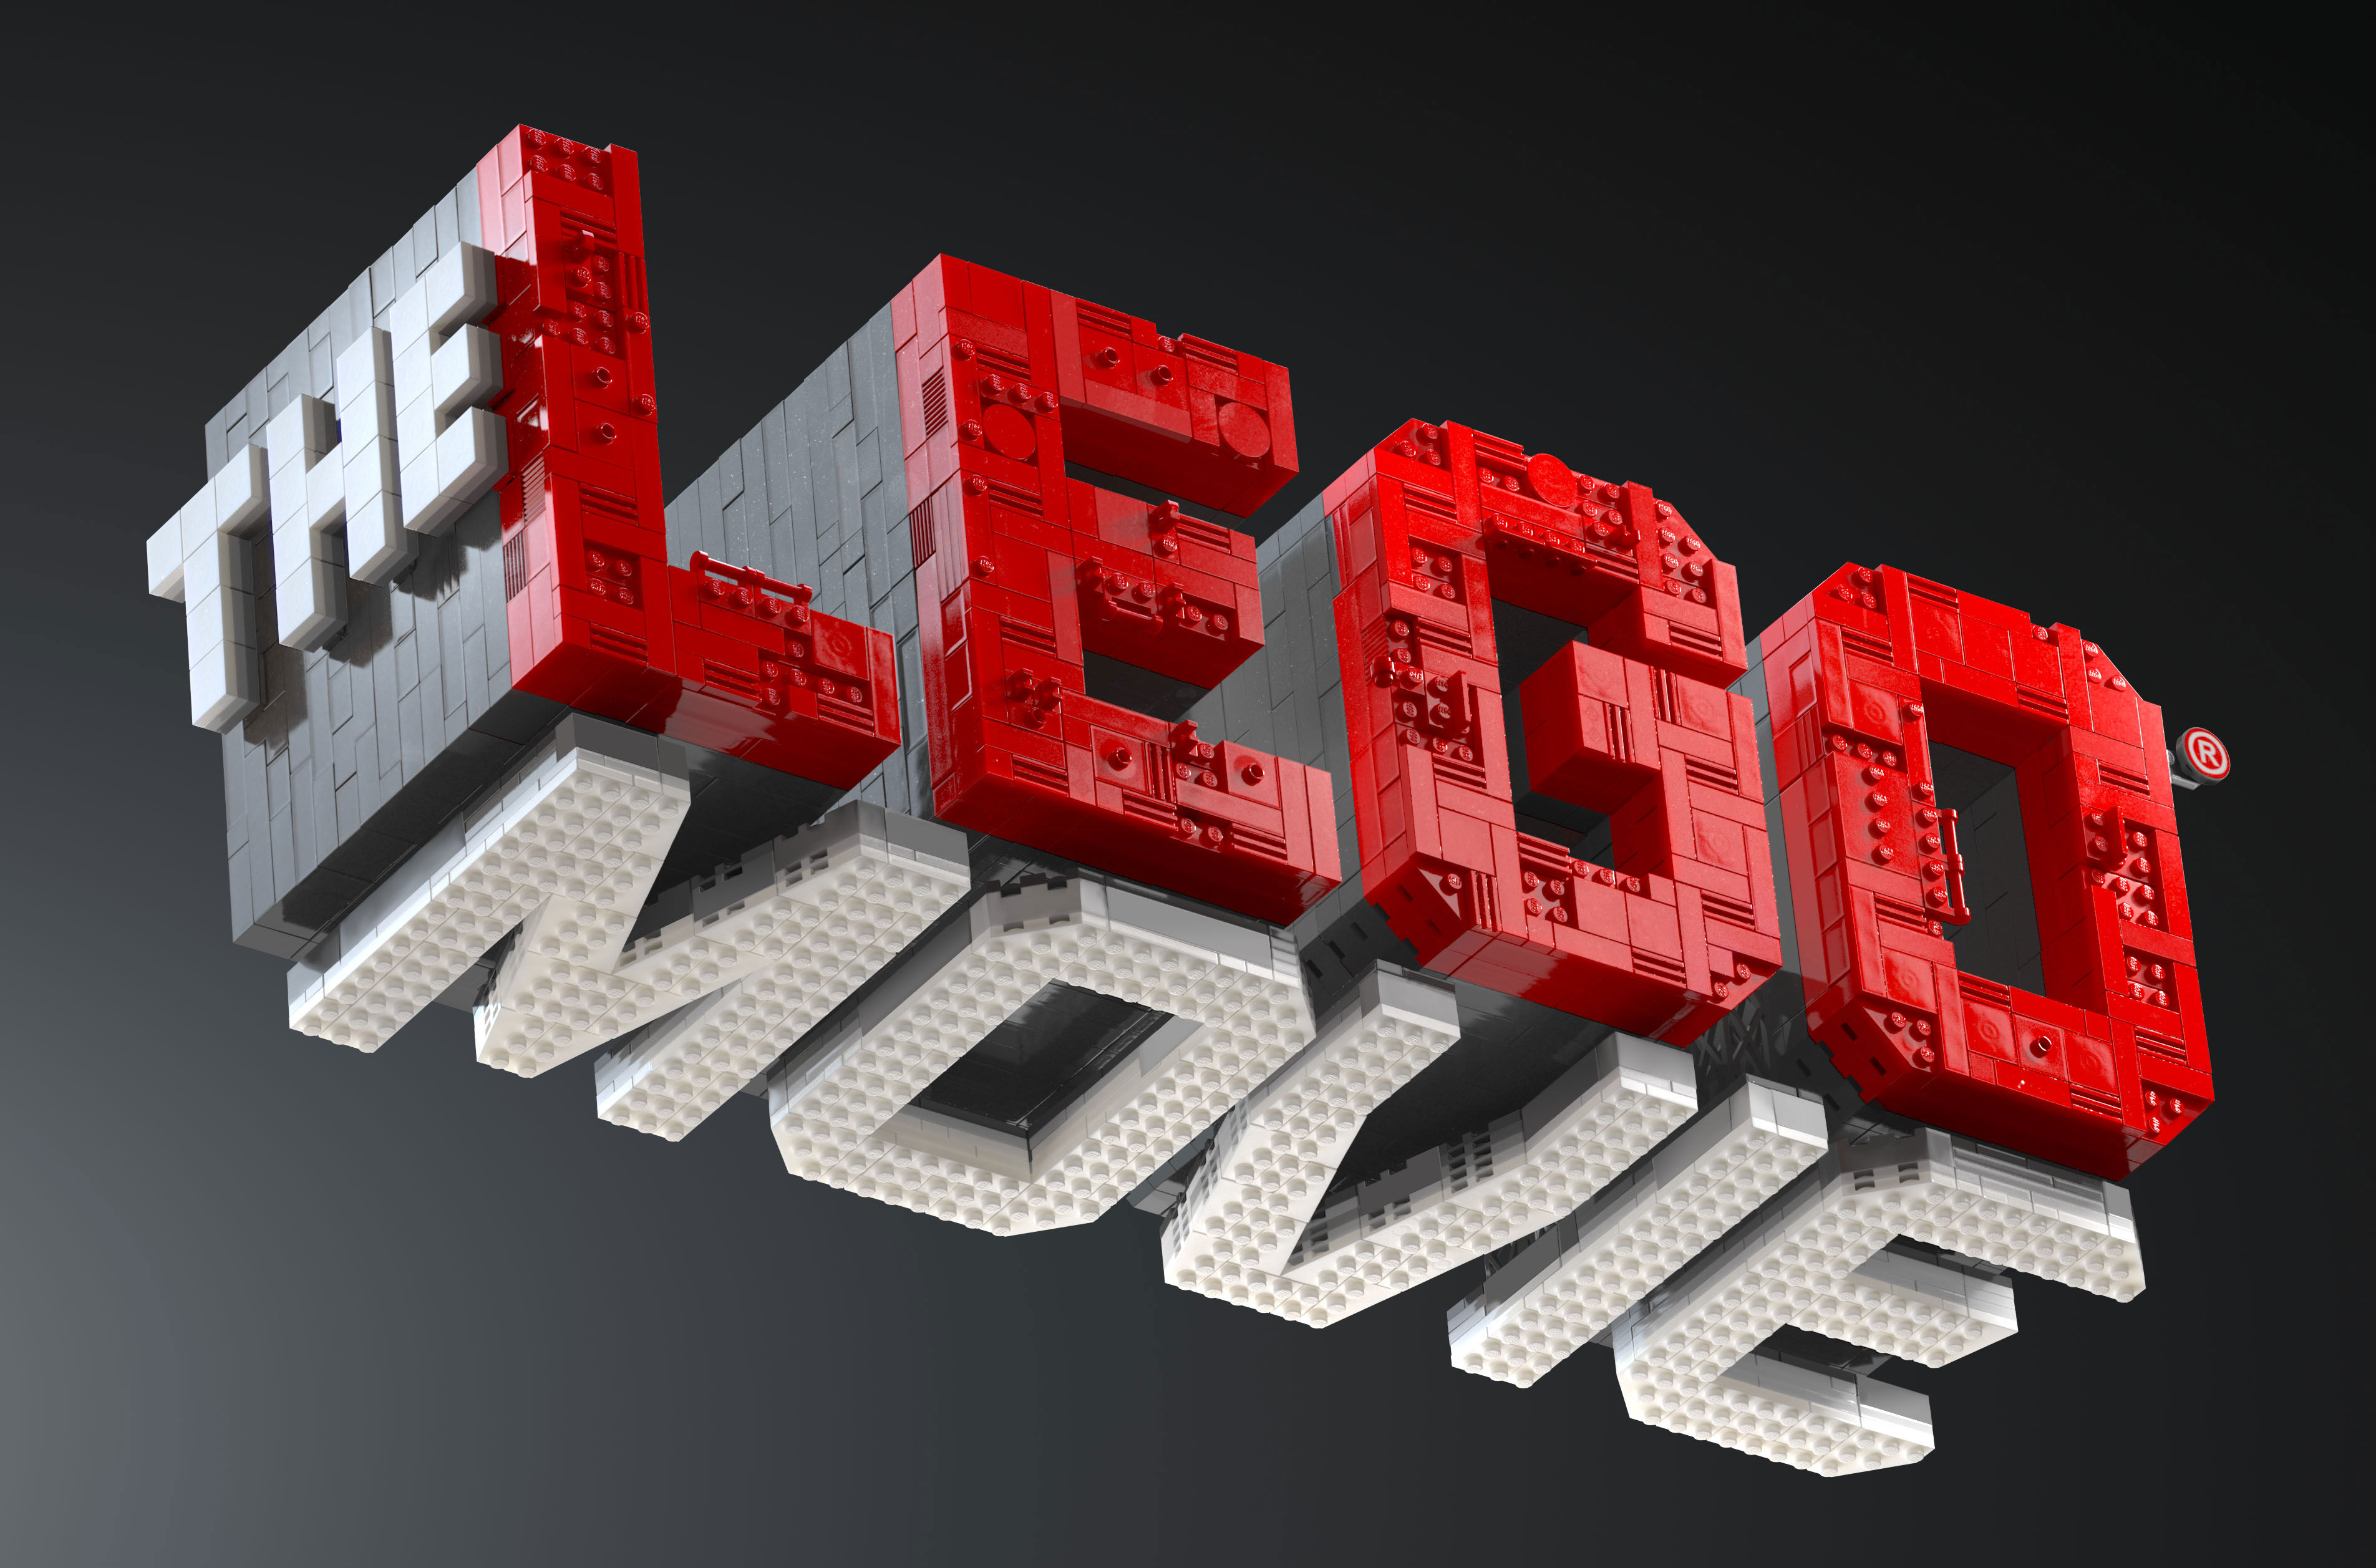 LEGO the movie watch the trailer